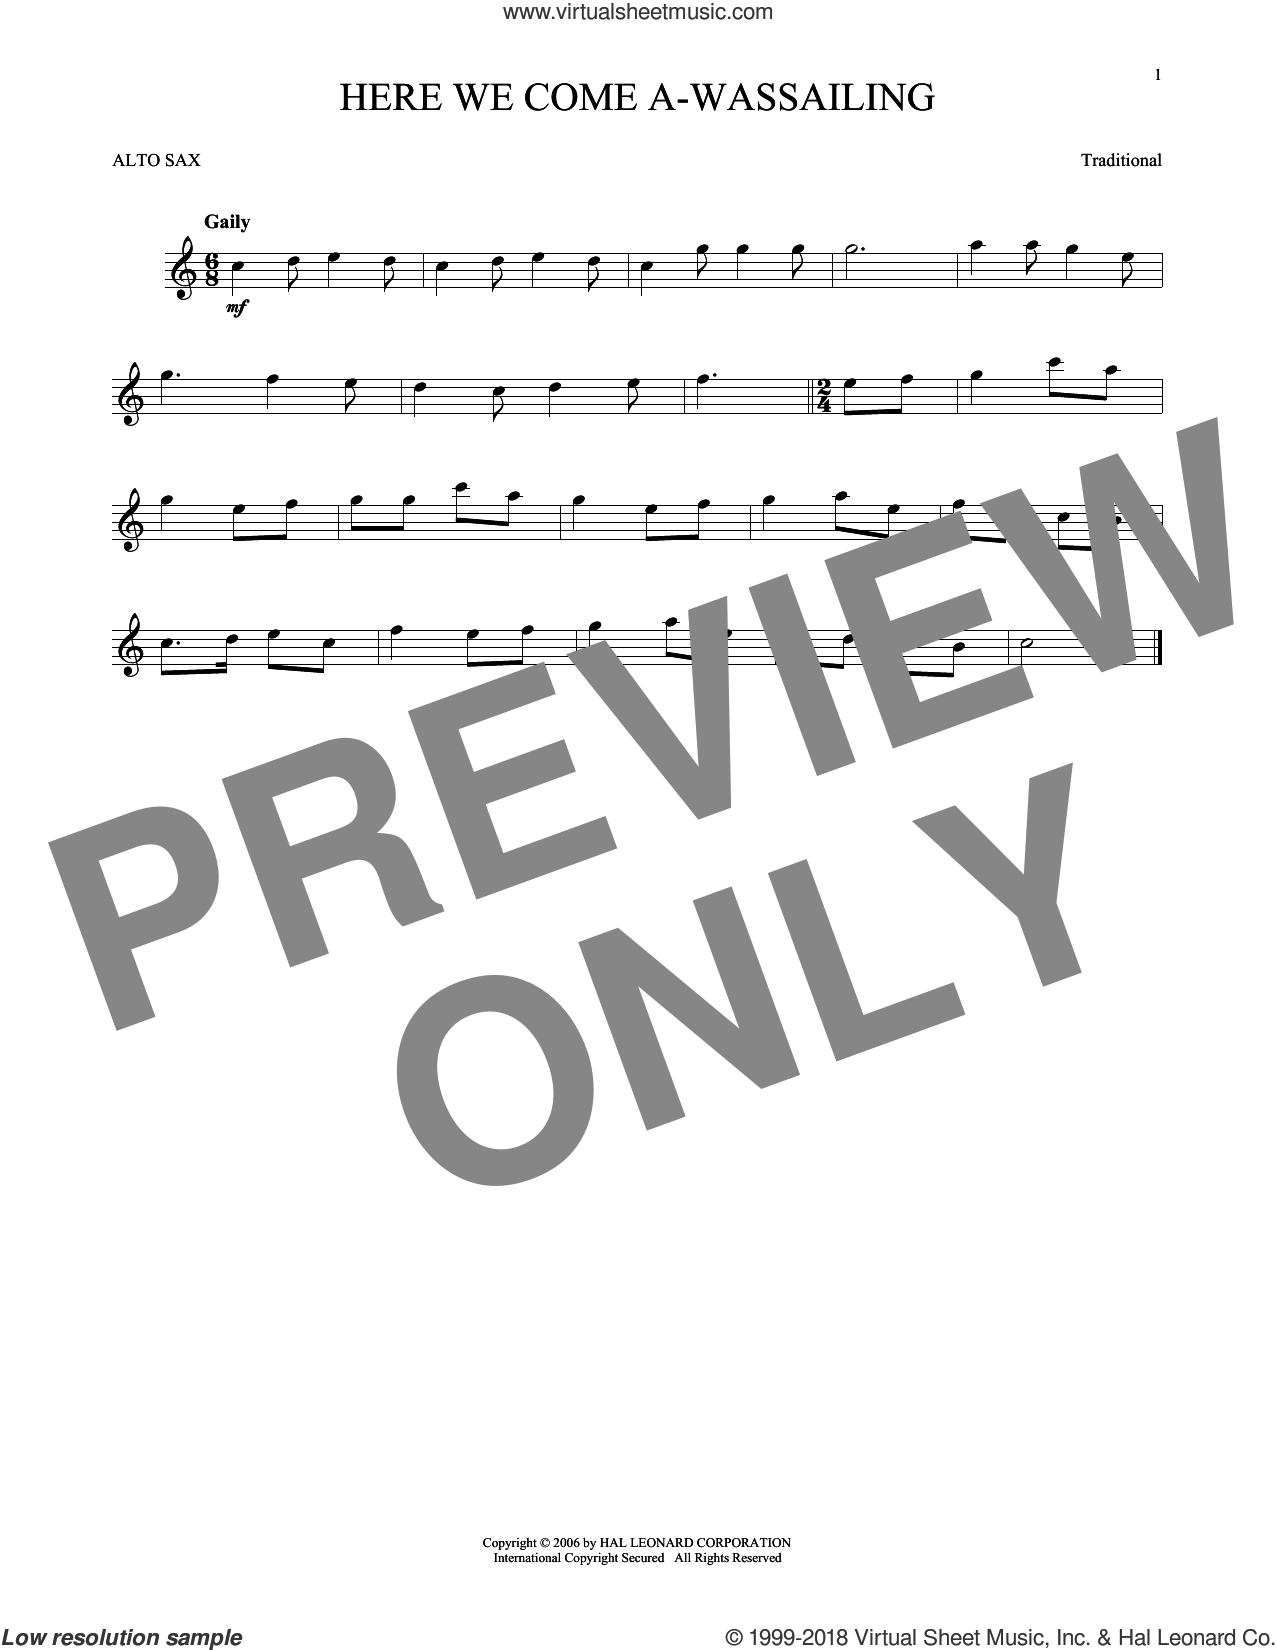 Here We Come A-Wassailing sheet music for alto saxophone solo, intermediate. Score Image Preview.